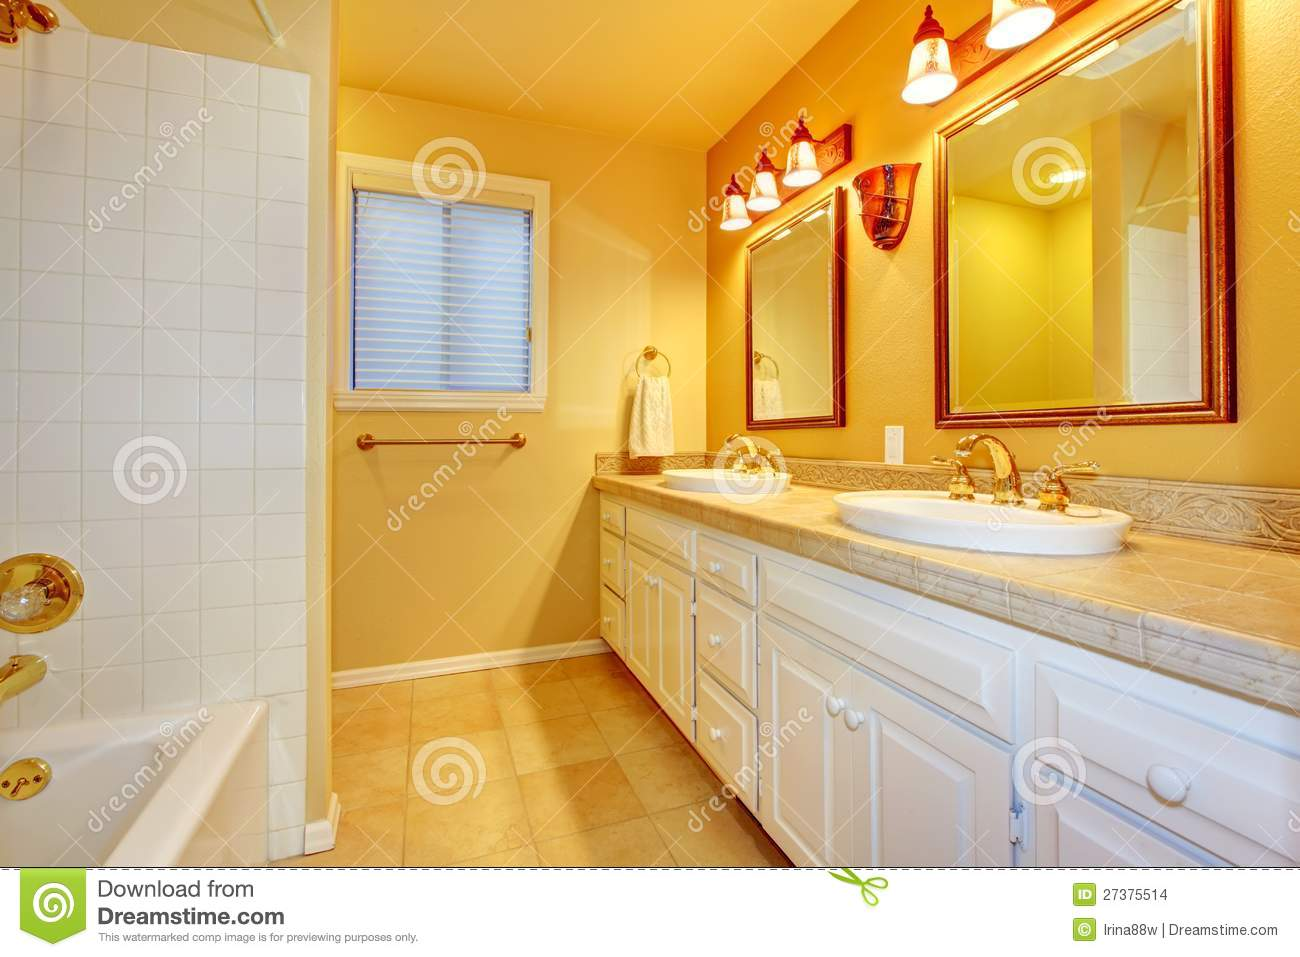 Bathroom With White Cabinets And Gold Walls Stock Photo